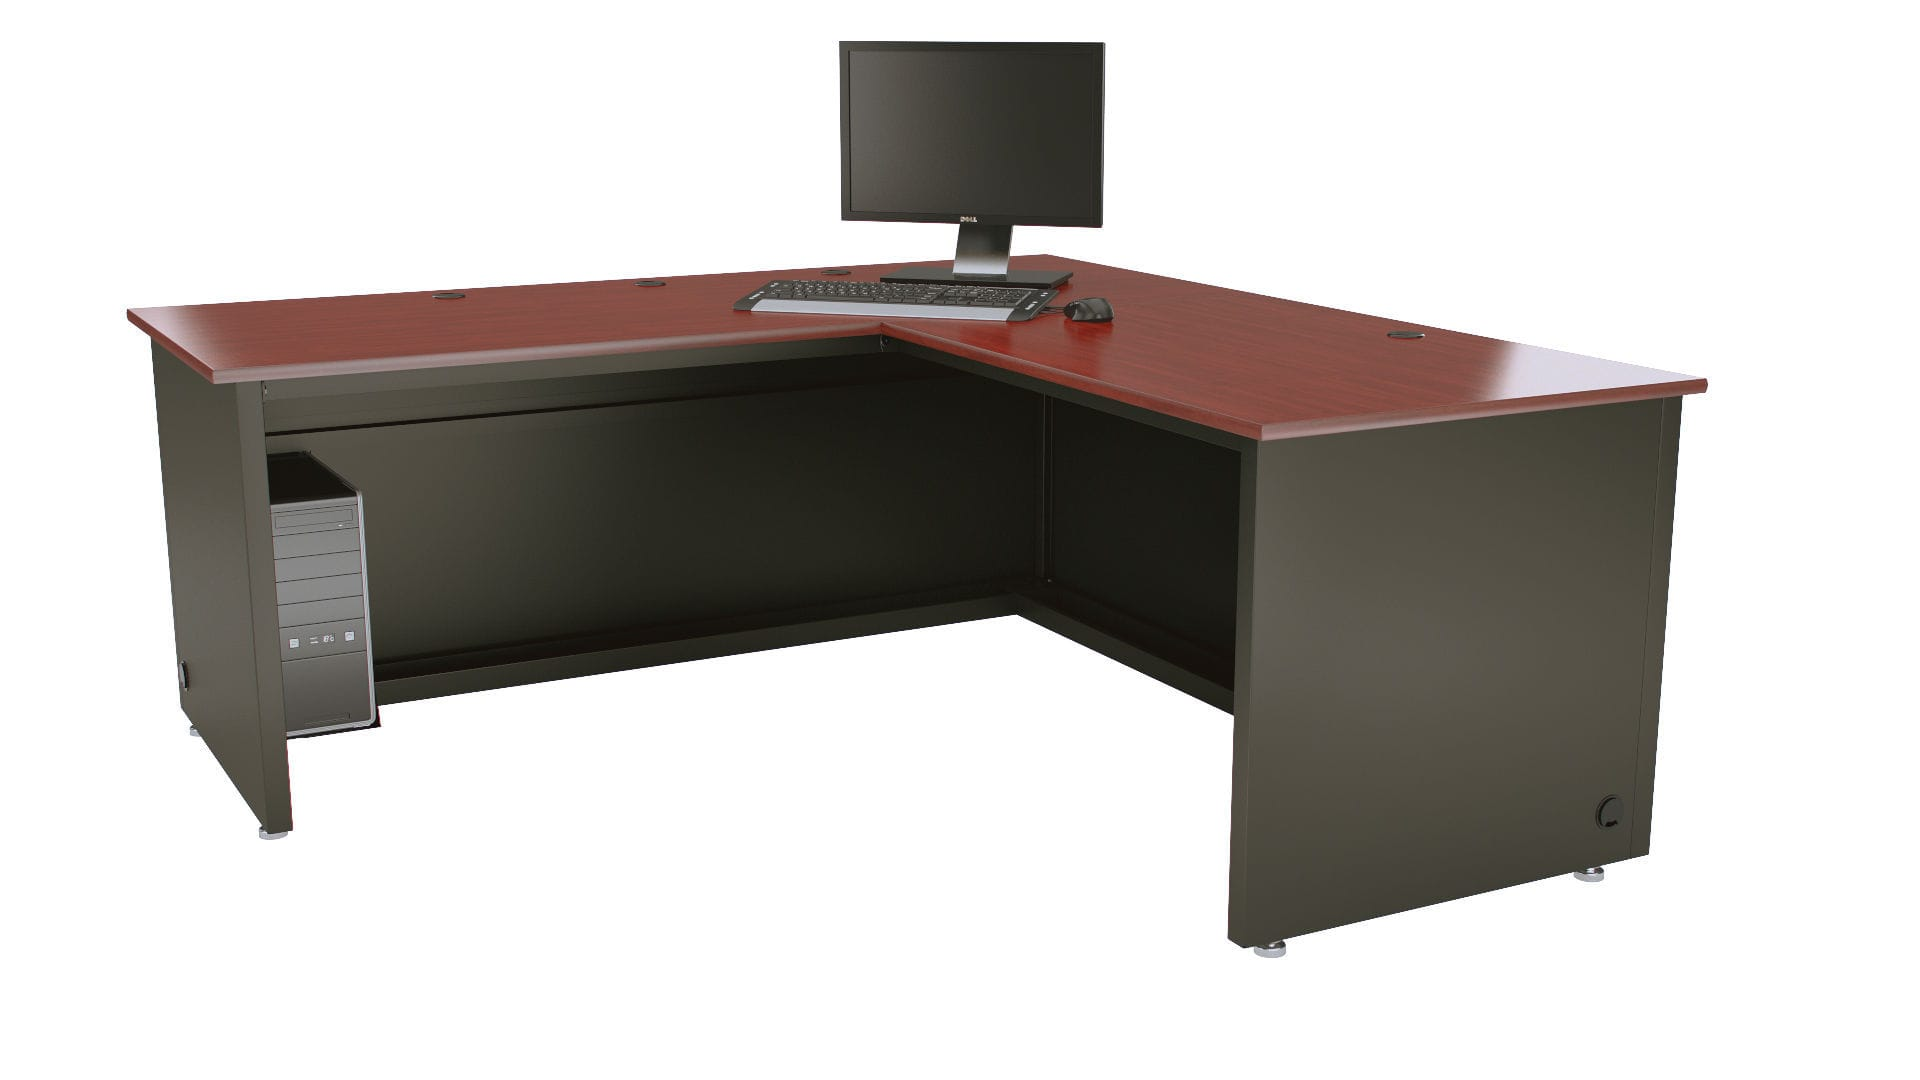 ... Executive Desk / Wooden / Laminate / Contemporary